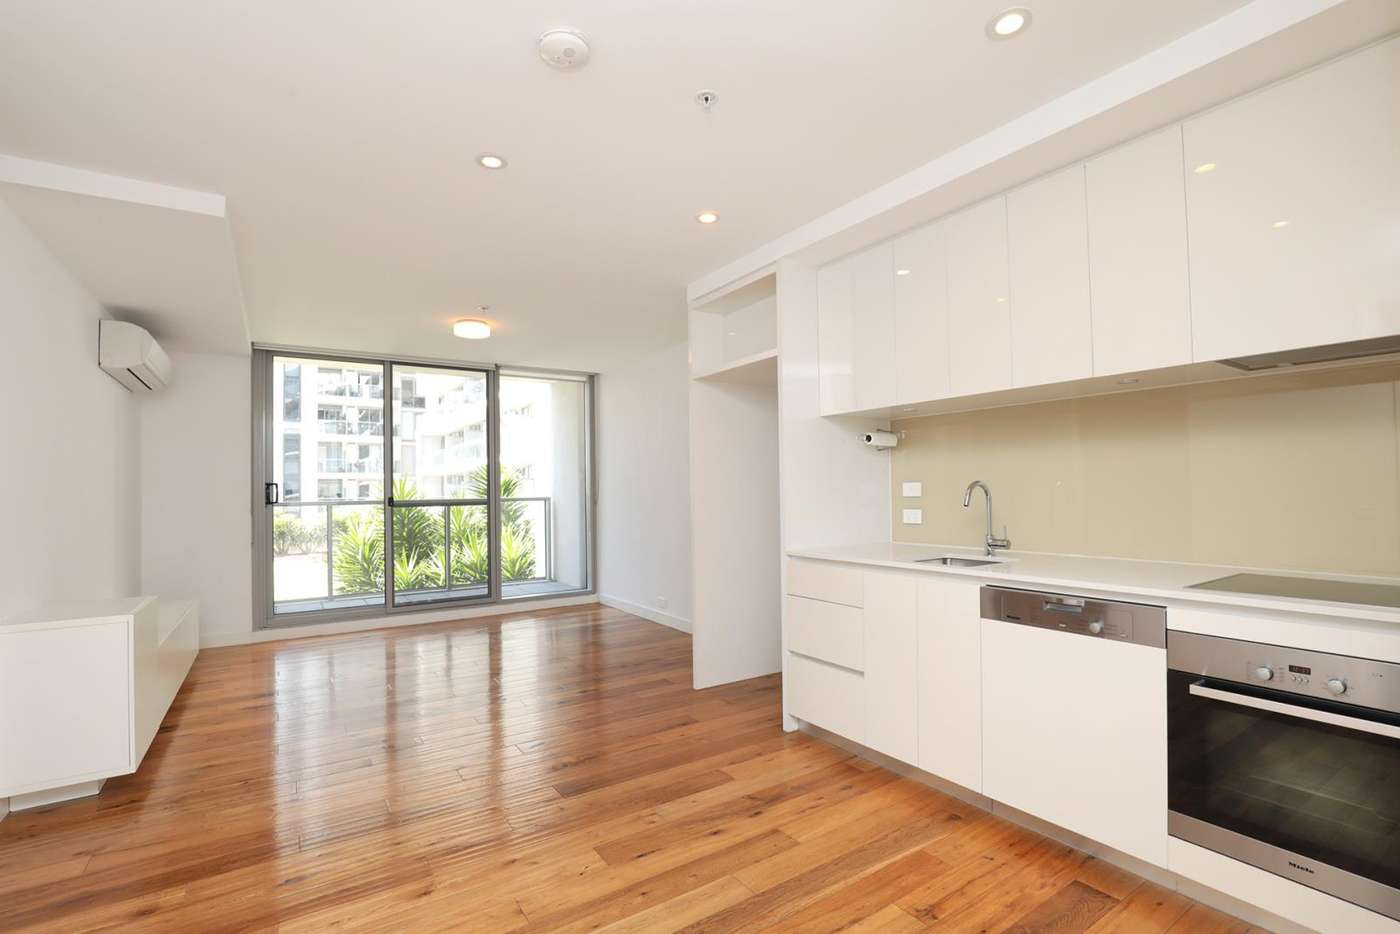 Main view of Homely apartment listing, 128/70 Nott Street, Port Melbourne VIC 3207